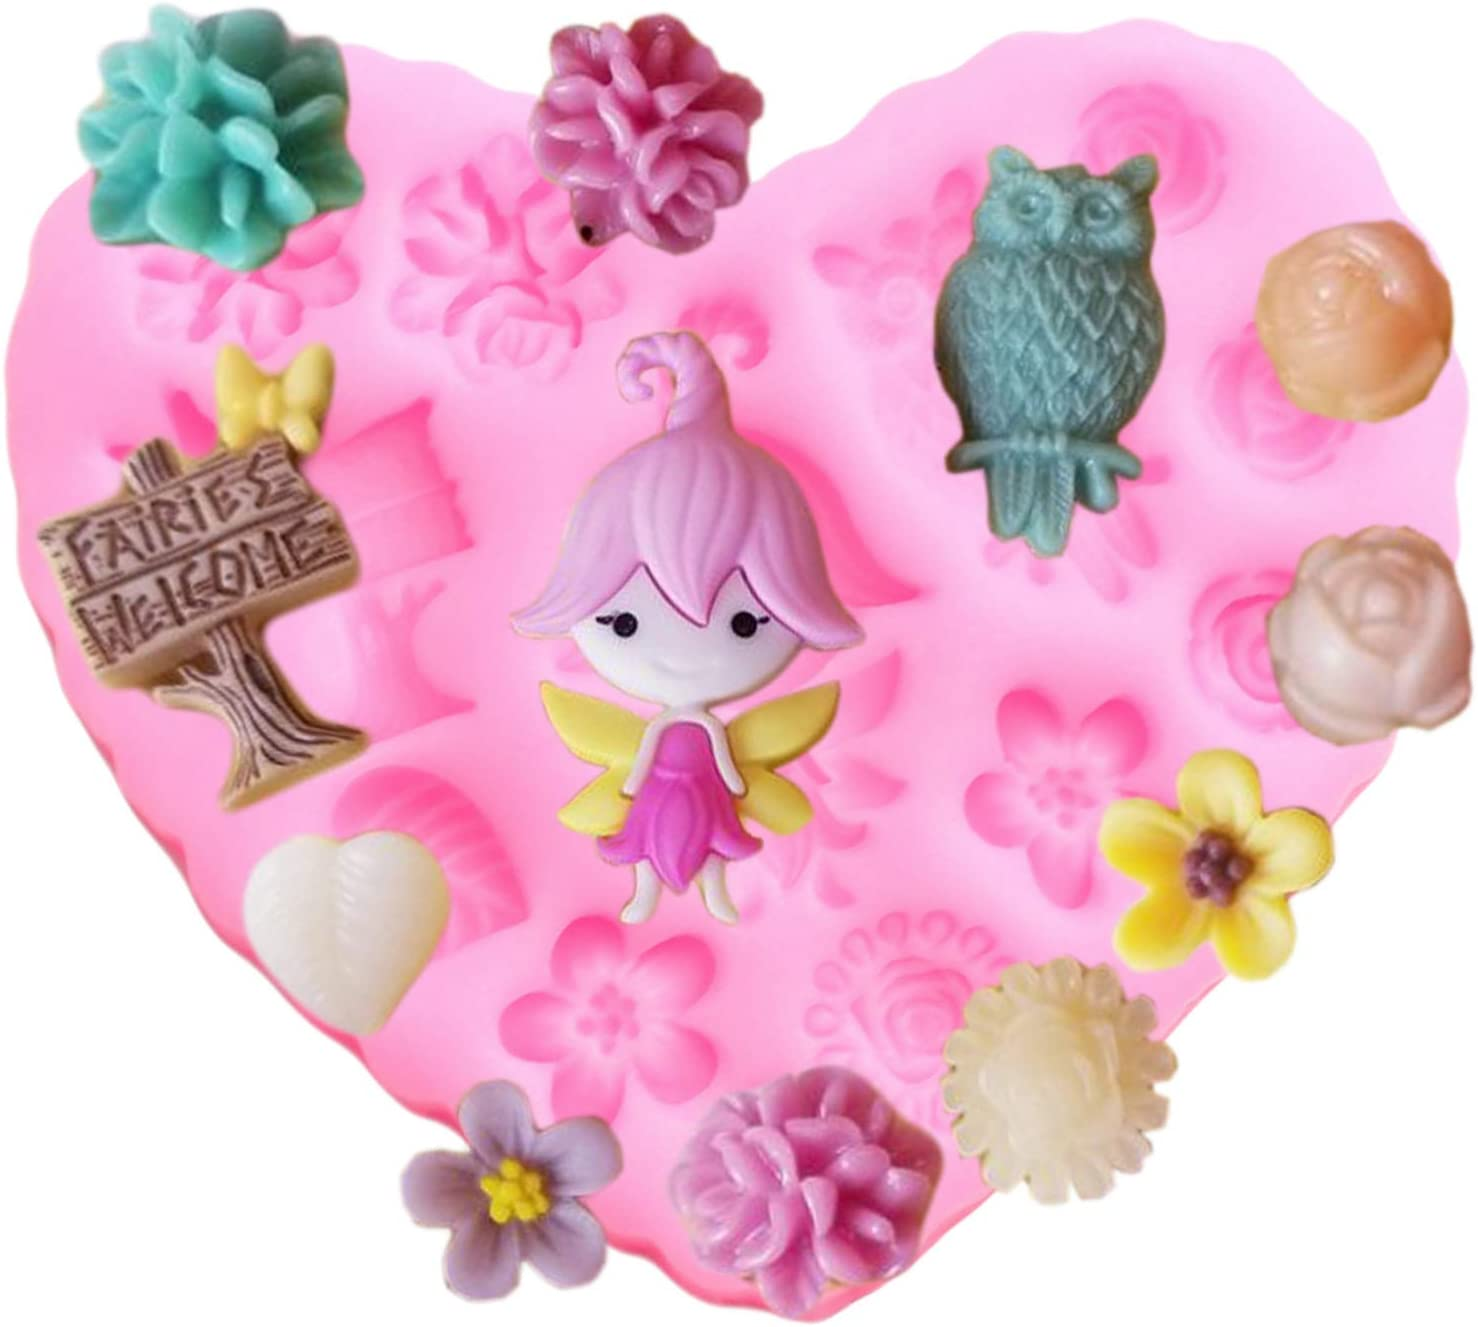 Fairy Garden Flower Silicone Mold for DIY Gum Paste Fondant Mold Ice Cube Candy Cupcake Cake Topper Decoration Crystal Chocolate Desserts Soap Mould Pudding Jelly Shots Handmade Ice Cream